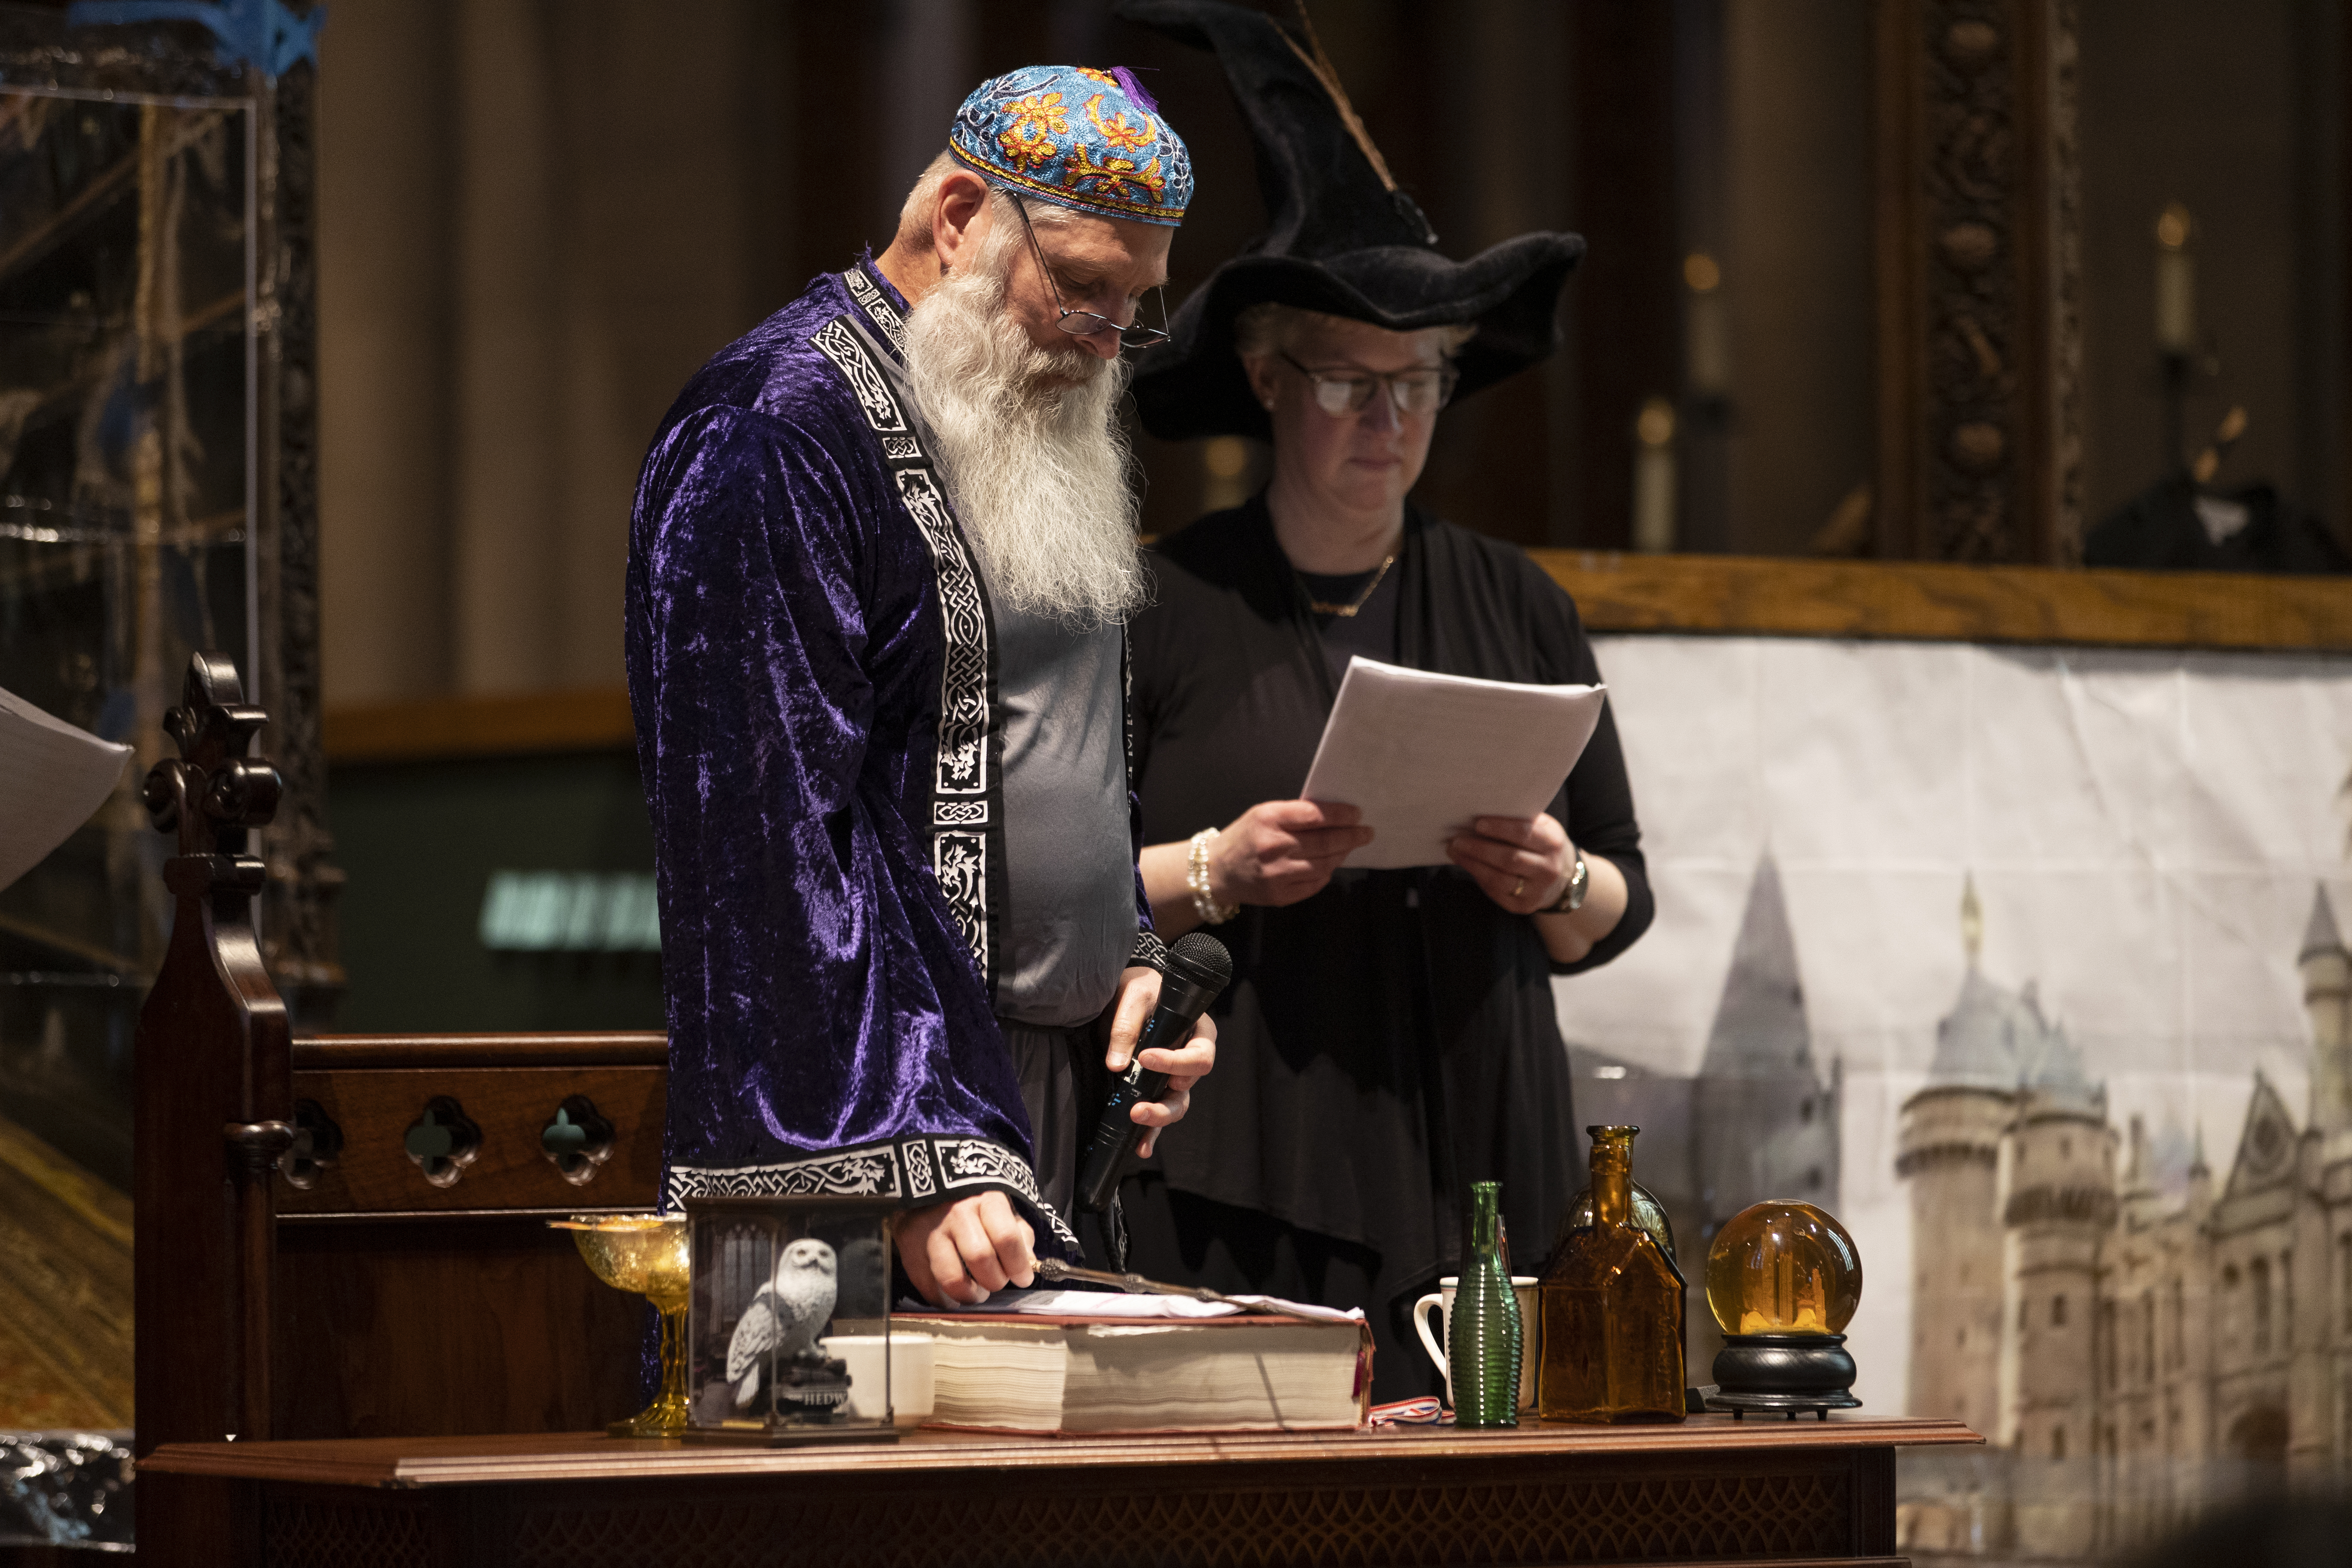 The Tree of Life and Rodef Shalom held a Purim service at Calvary Episcopal Church on March 8, 2020. The Rev. Jonathon Jensen and the Rev. Neil Raman both have parts in the play.